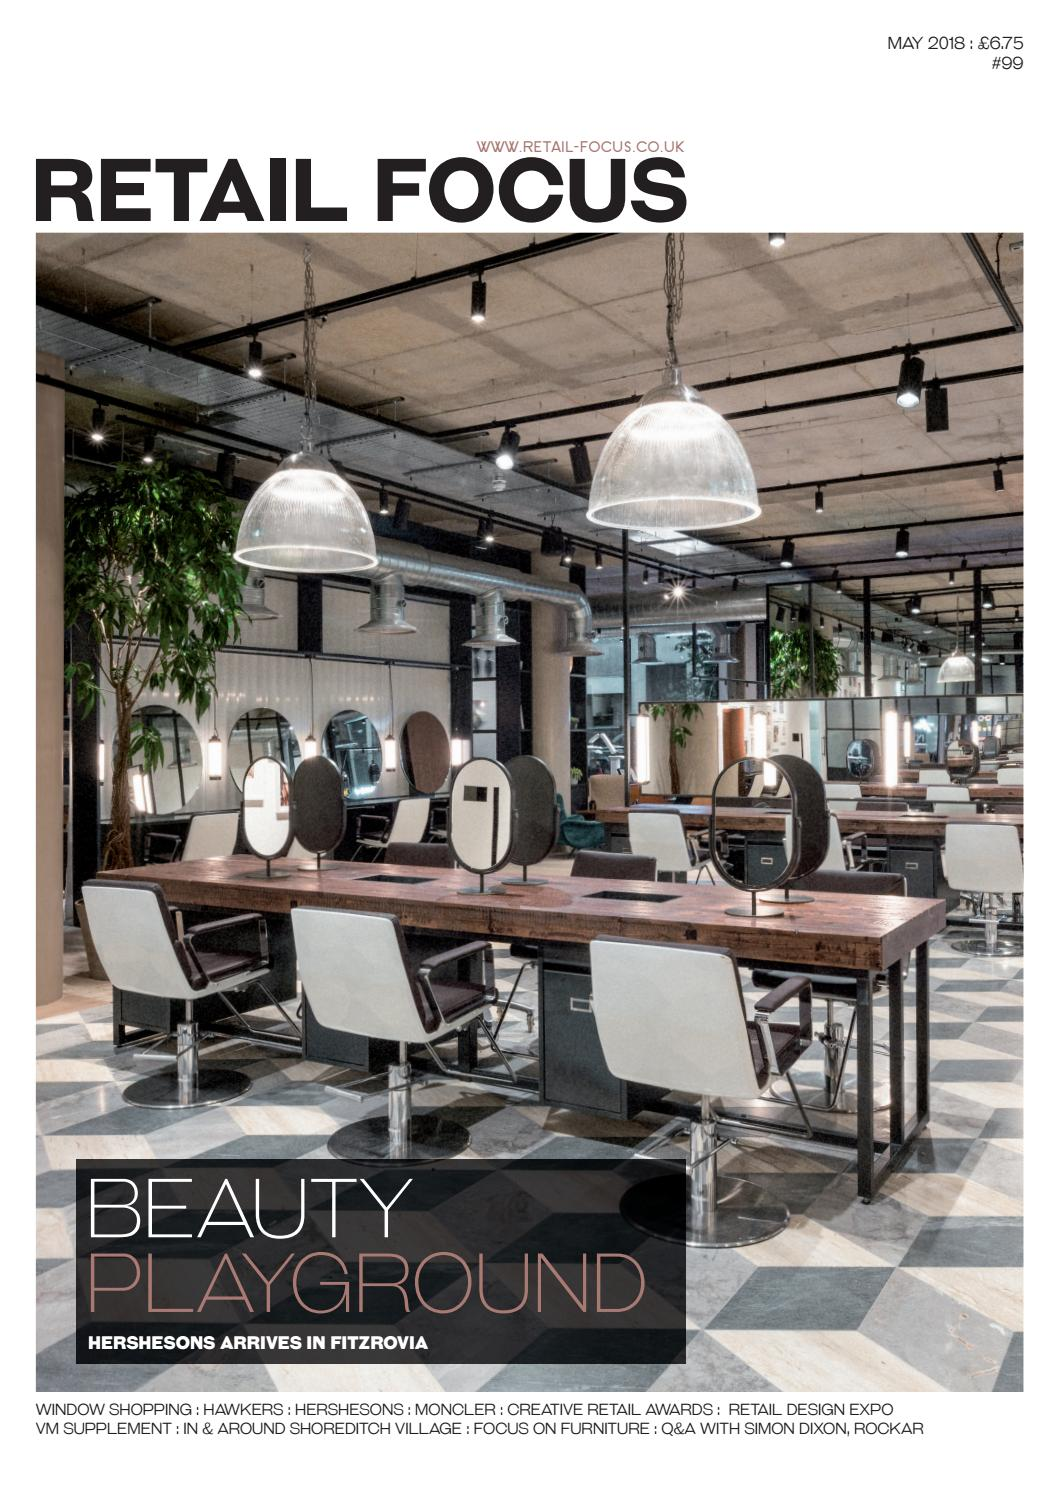 Retail Focus May 2018 by Retail Focus - issuu e4cb85677c1